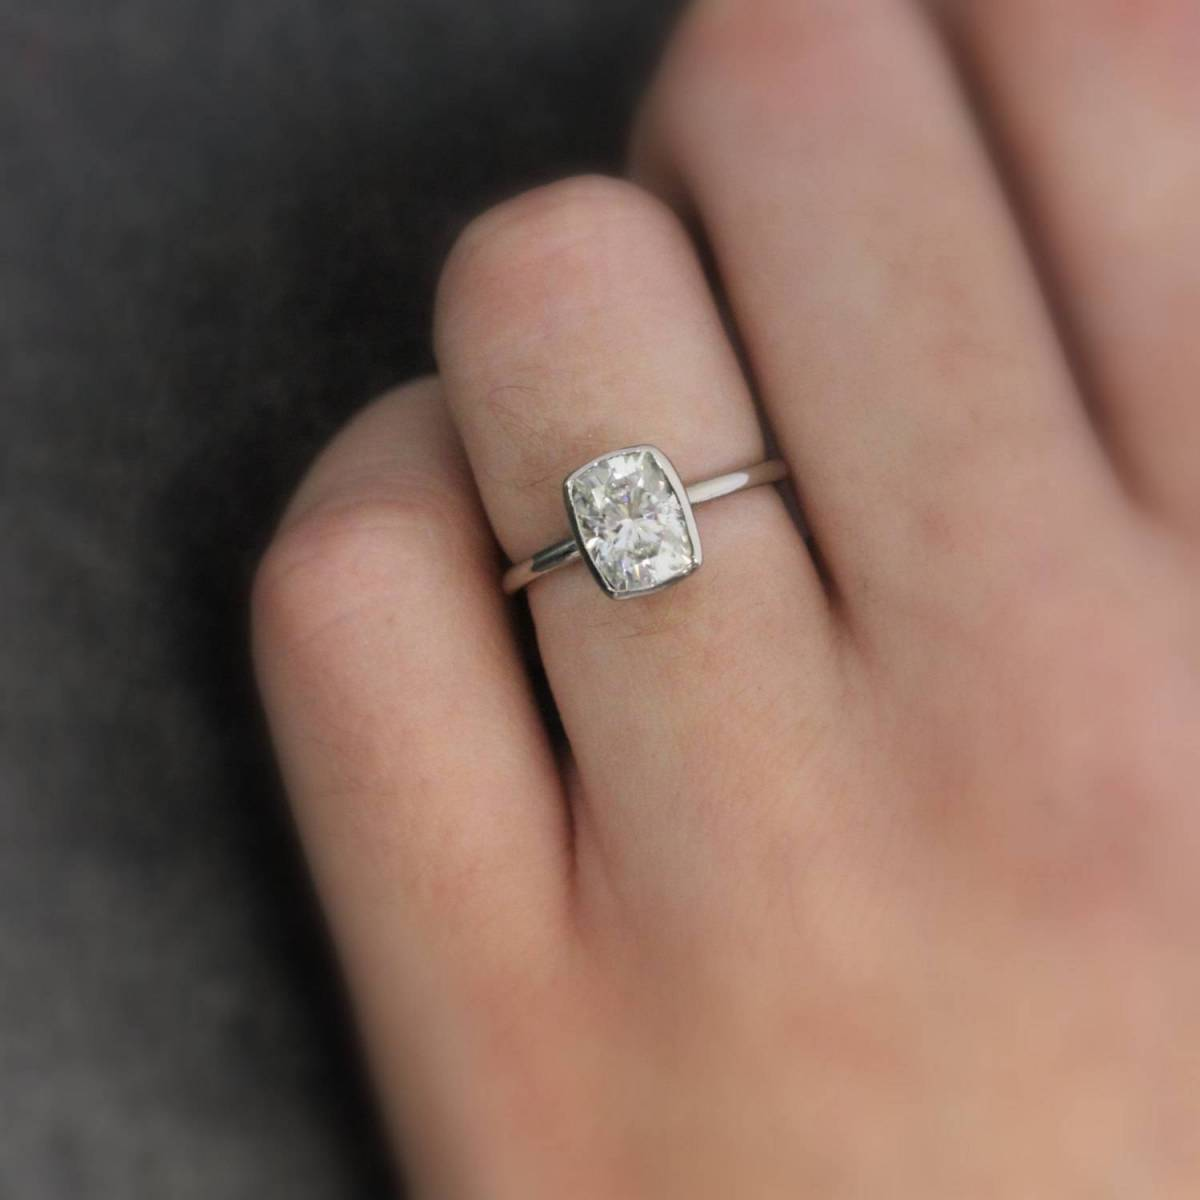 onegarnetgirl.etsy.com – Sparkling Moissanite Gold Engagement Ring  14k Palladium White Gold with Large Cushion Cut Solitaire $1998